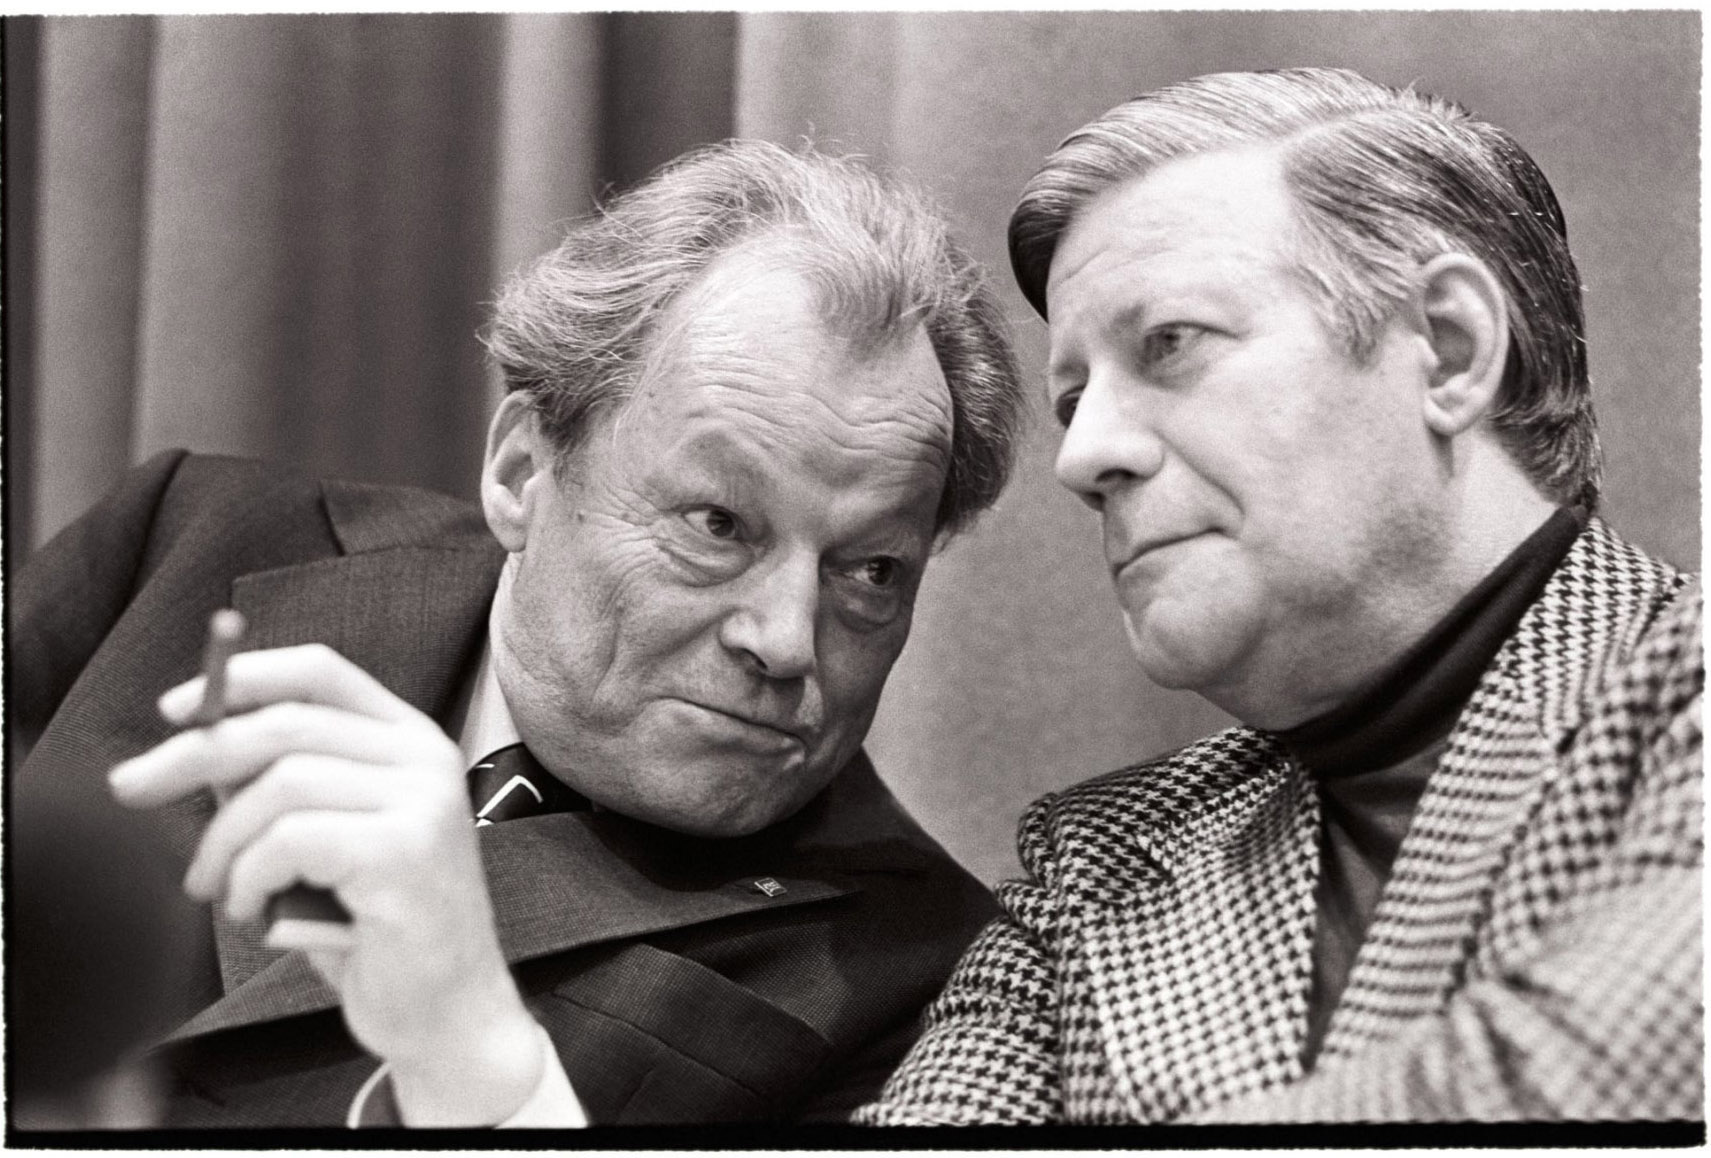 Willy Brandt and Helmut Schmidt, Ex-Chancellor and Chancellor of the Federal Republic of Germany, Bonn 1975